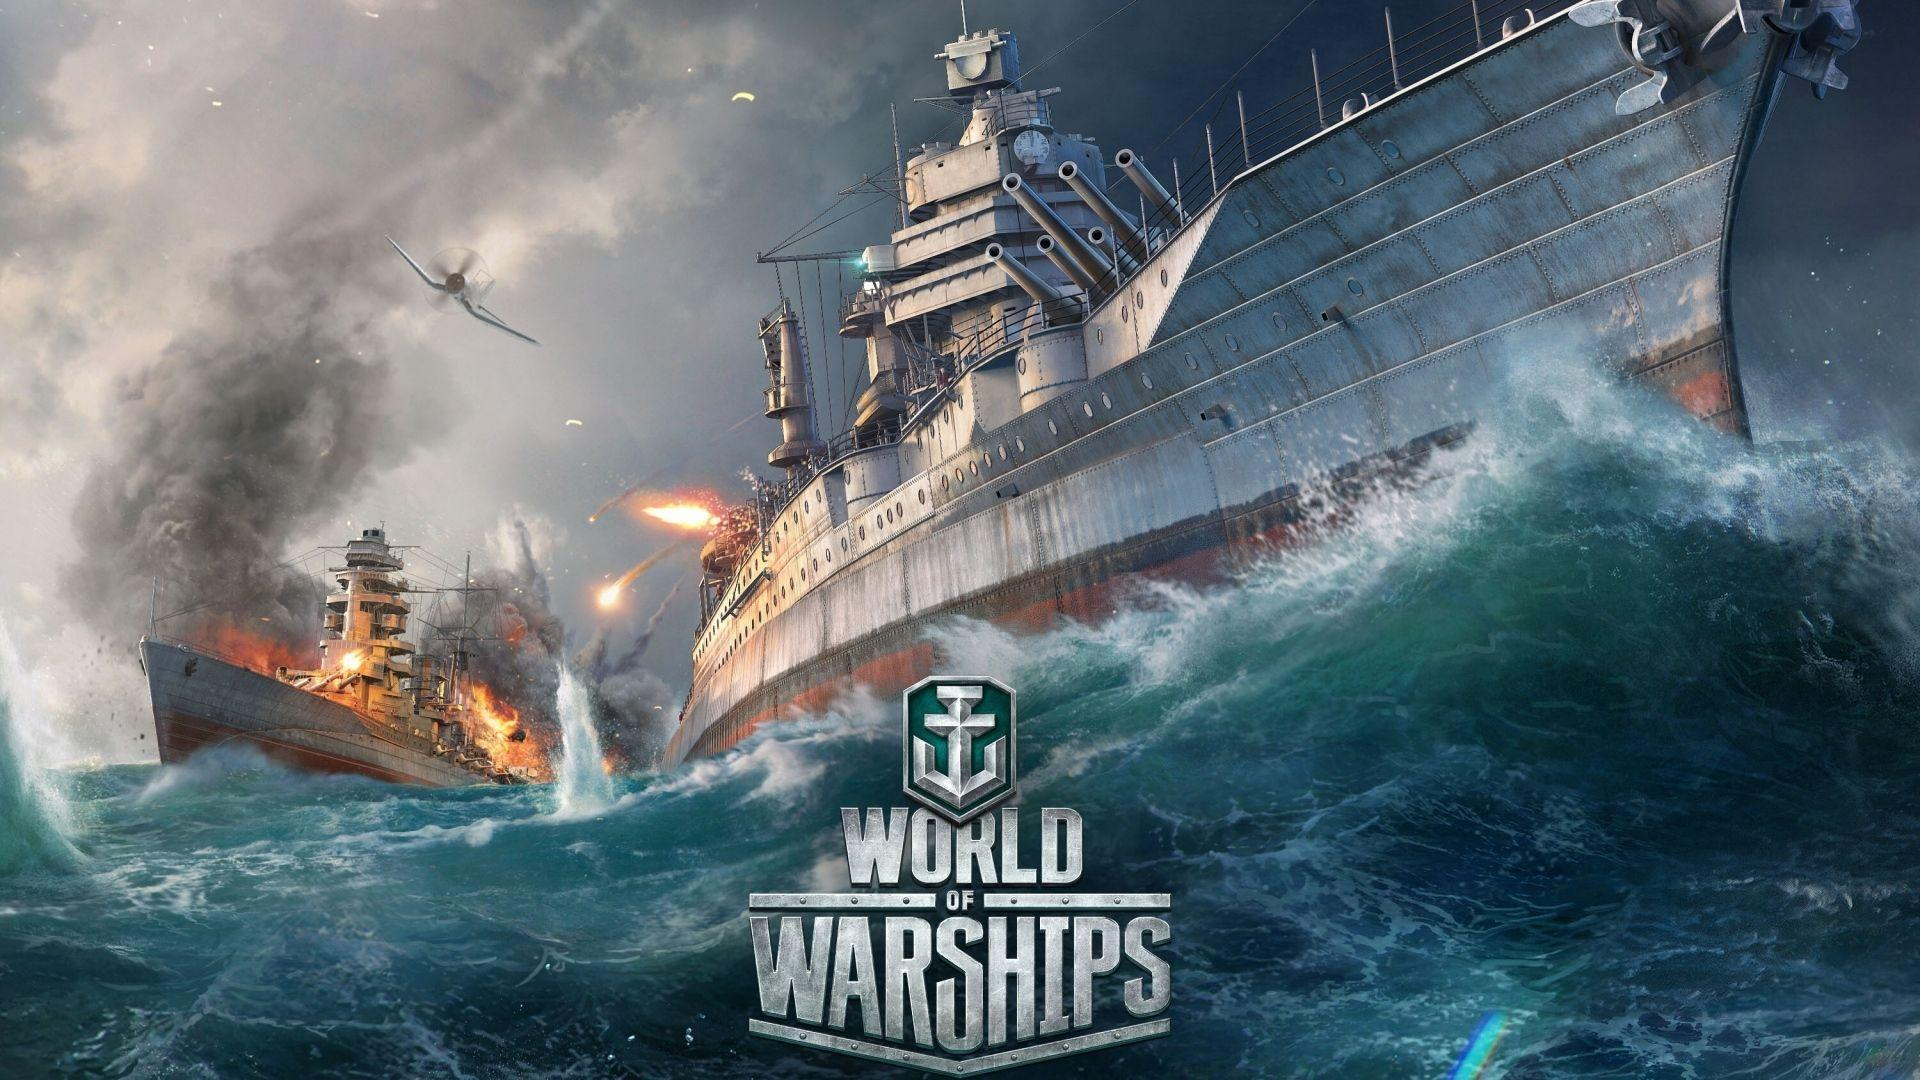 Full HD 1080p World of warships Wallpapers HD, Desktop Backgrounds ...